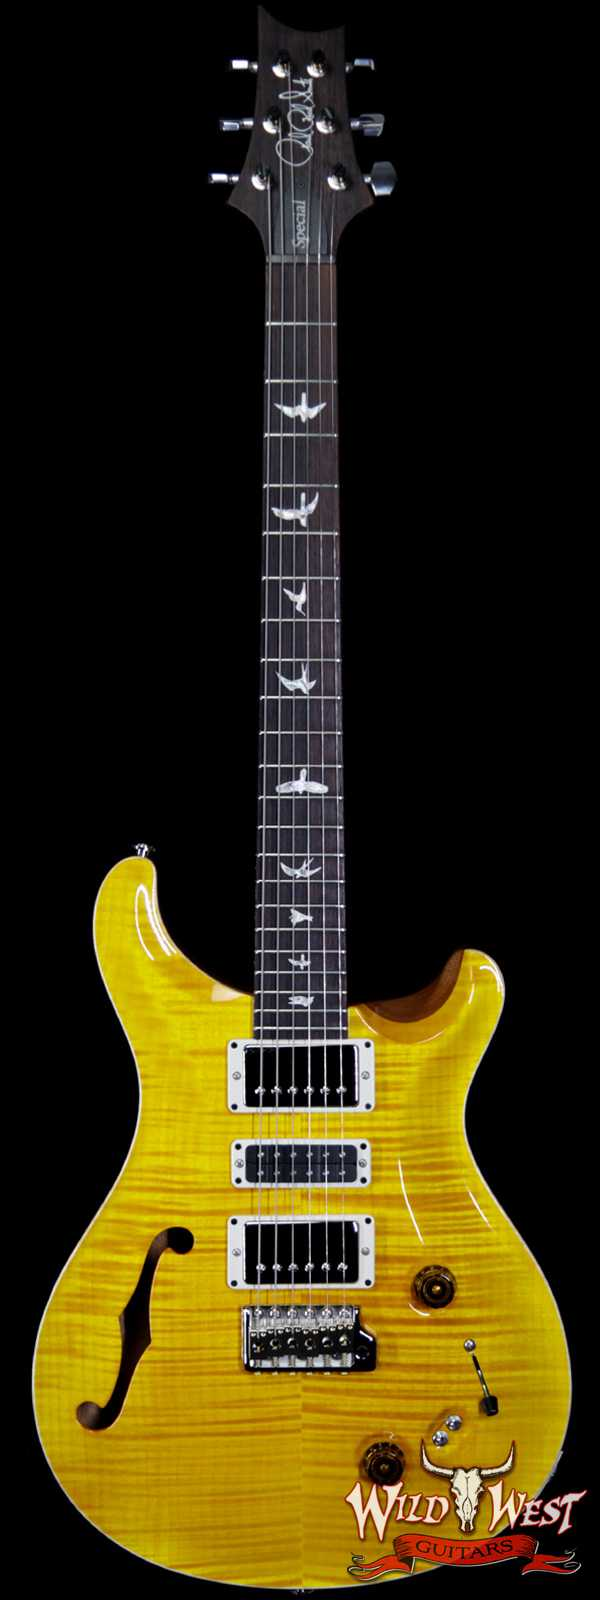 Paul Reed Smith PRS Limited Edition Special 22 Semi-Hollow Rosewood Fingerboard Santana Yellow